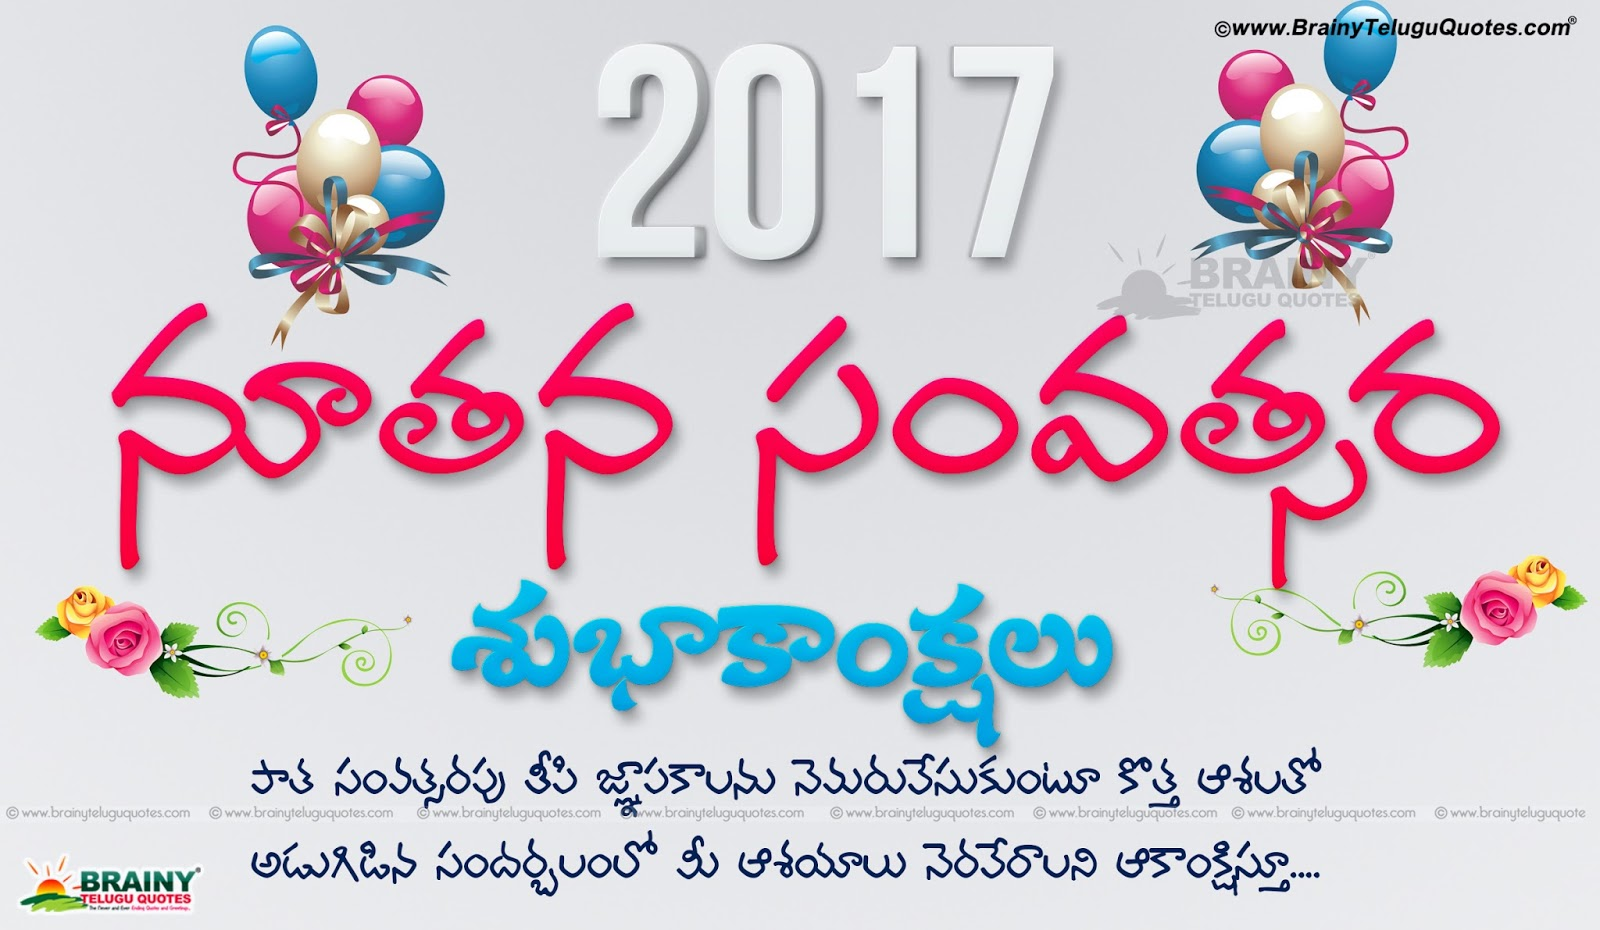 Latest Telugu 3d New Year Quotes Greetings With Hd Wallpapers